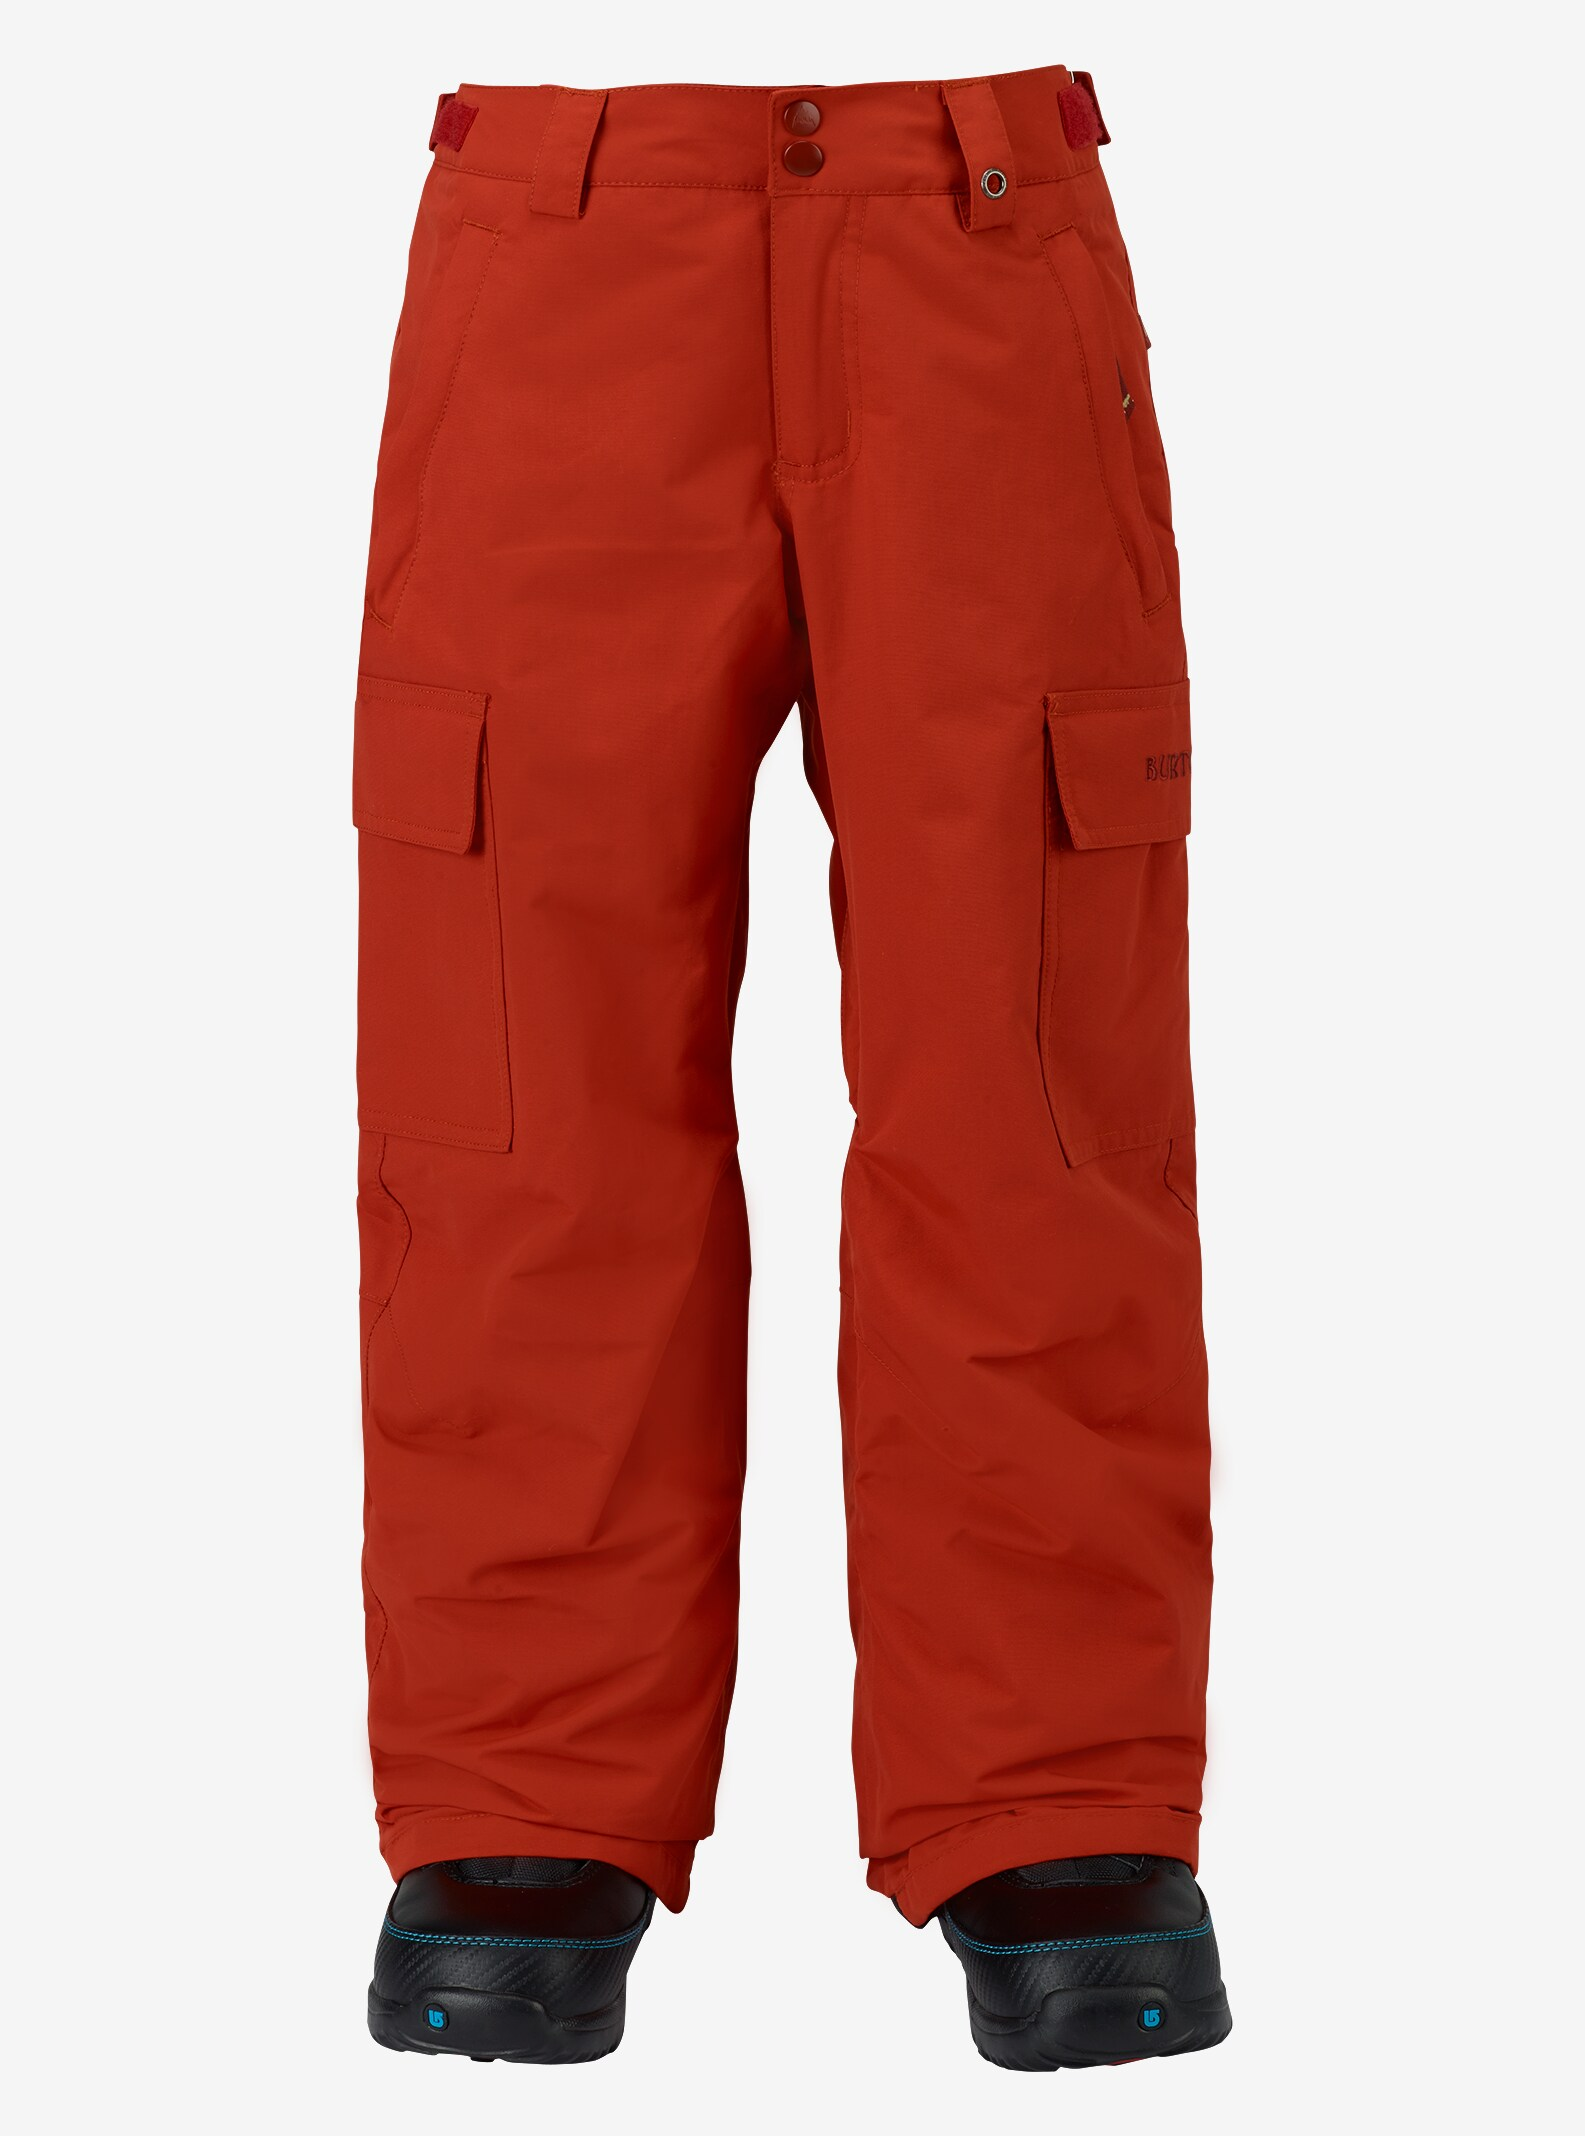 Boys' Burton Boys' Exile Cargo Pant shown in Bitters